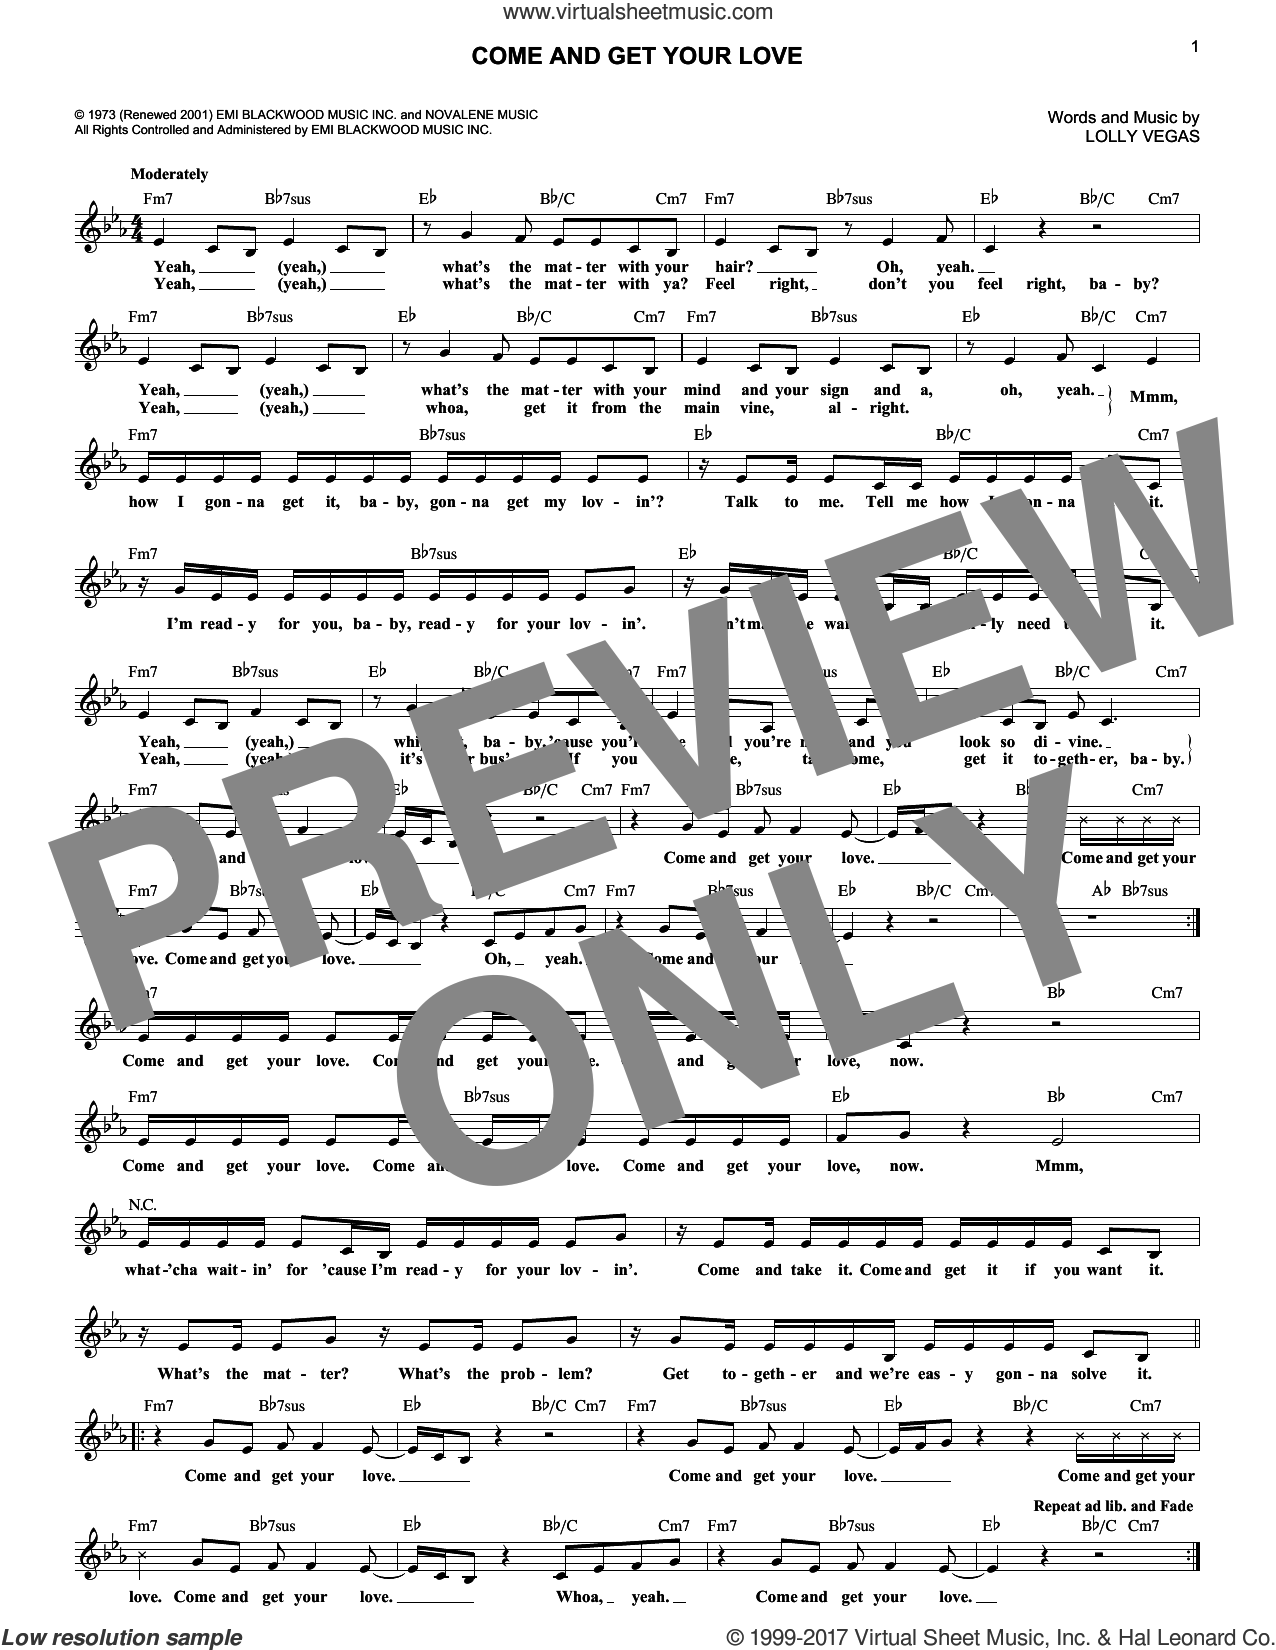 Come And Get Your Love sheet music for voice and other instruments (fake book) by Redbone, Real McCoy and Lolly Vegas, intermediate skill level